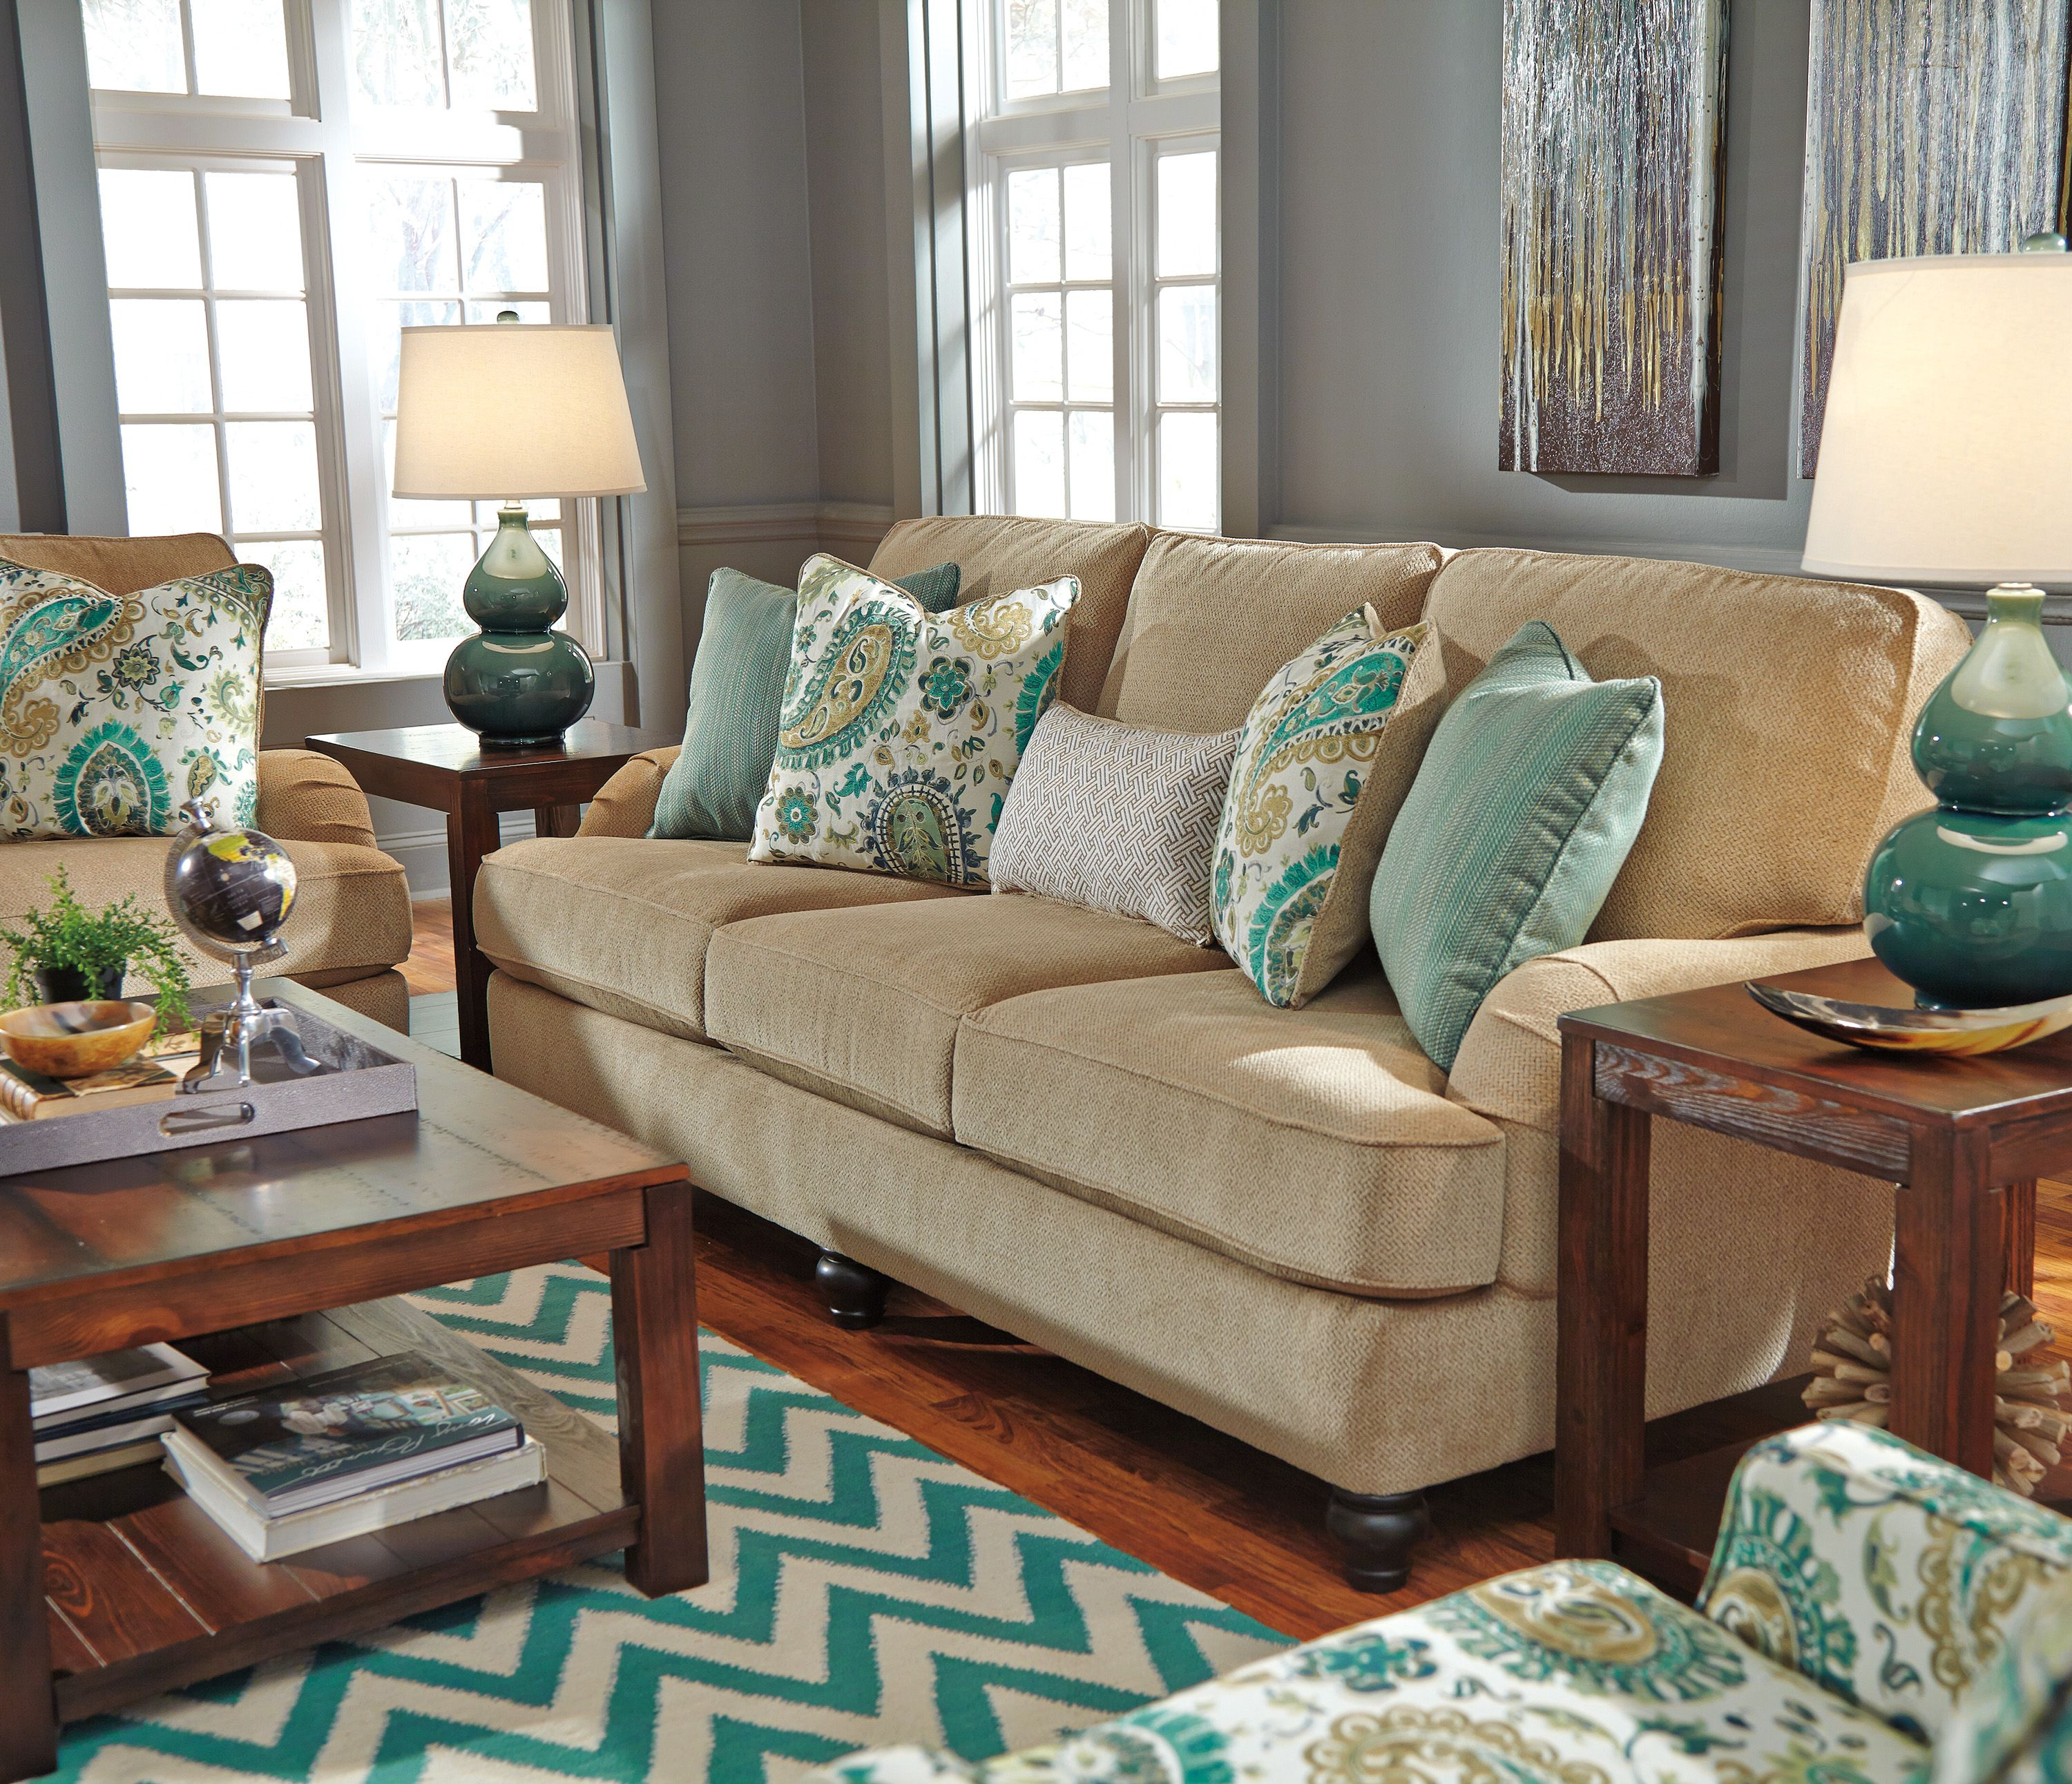 Best Look At This Beautiful Living Room Collection The Color 640 x 480